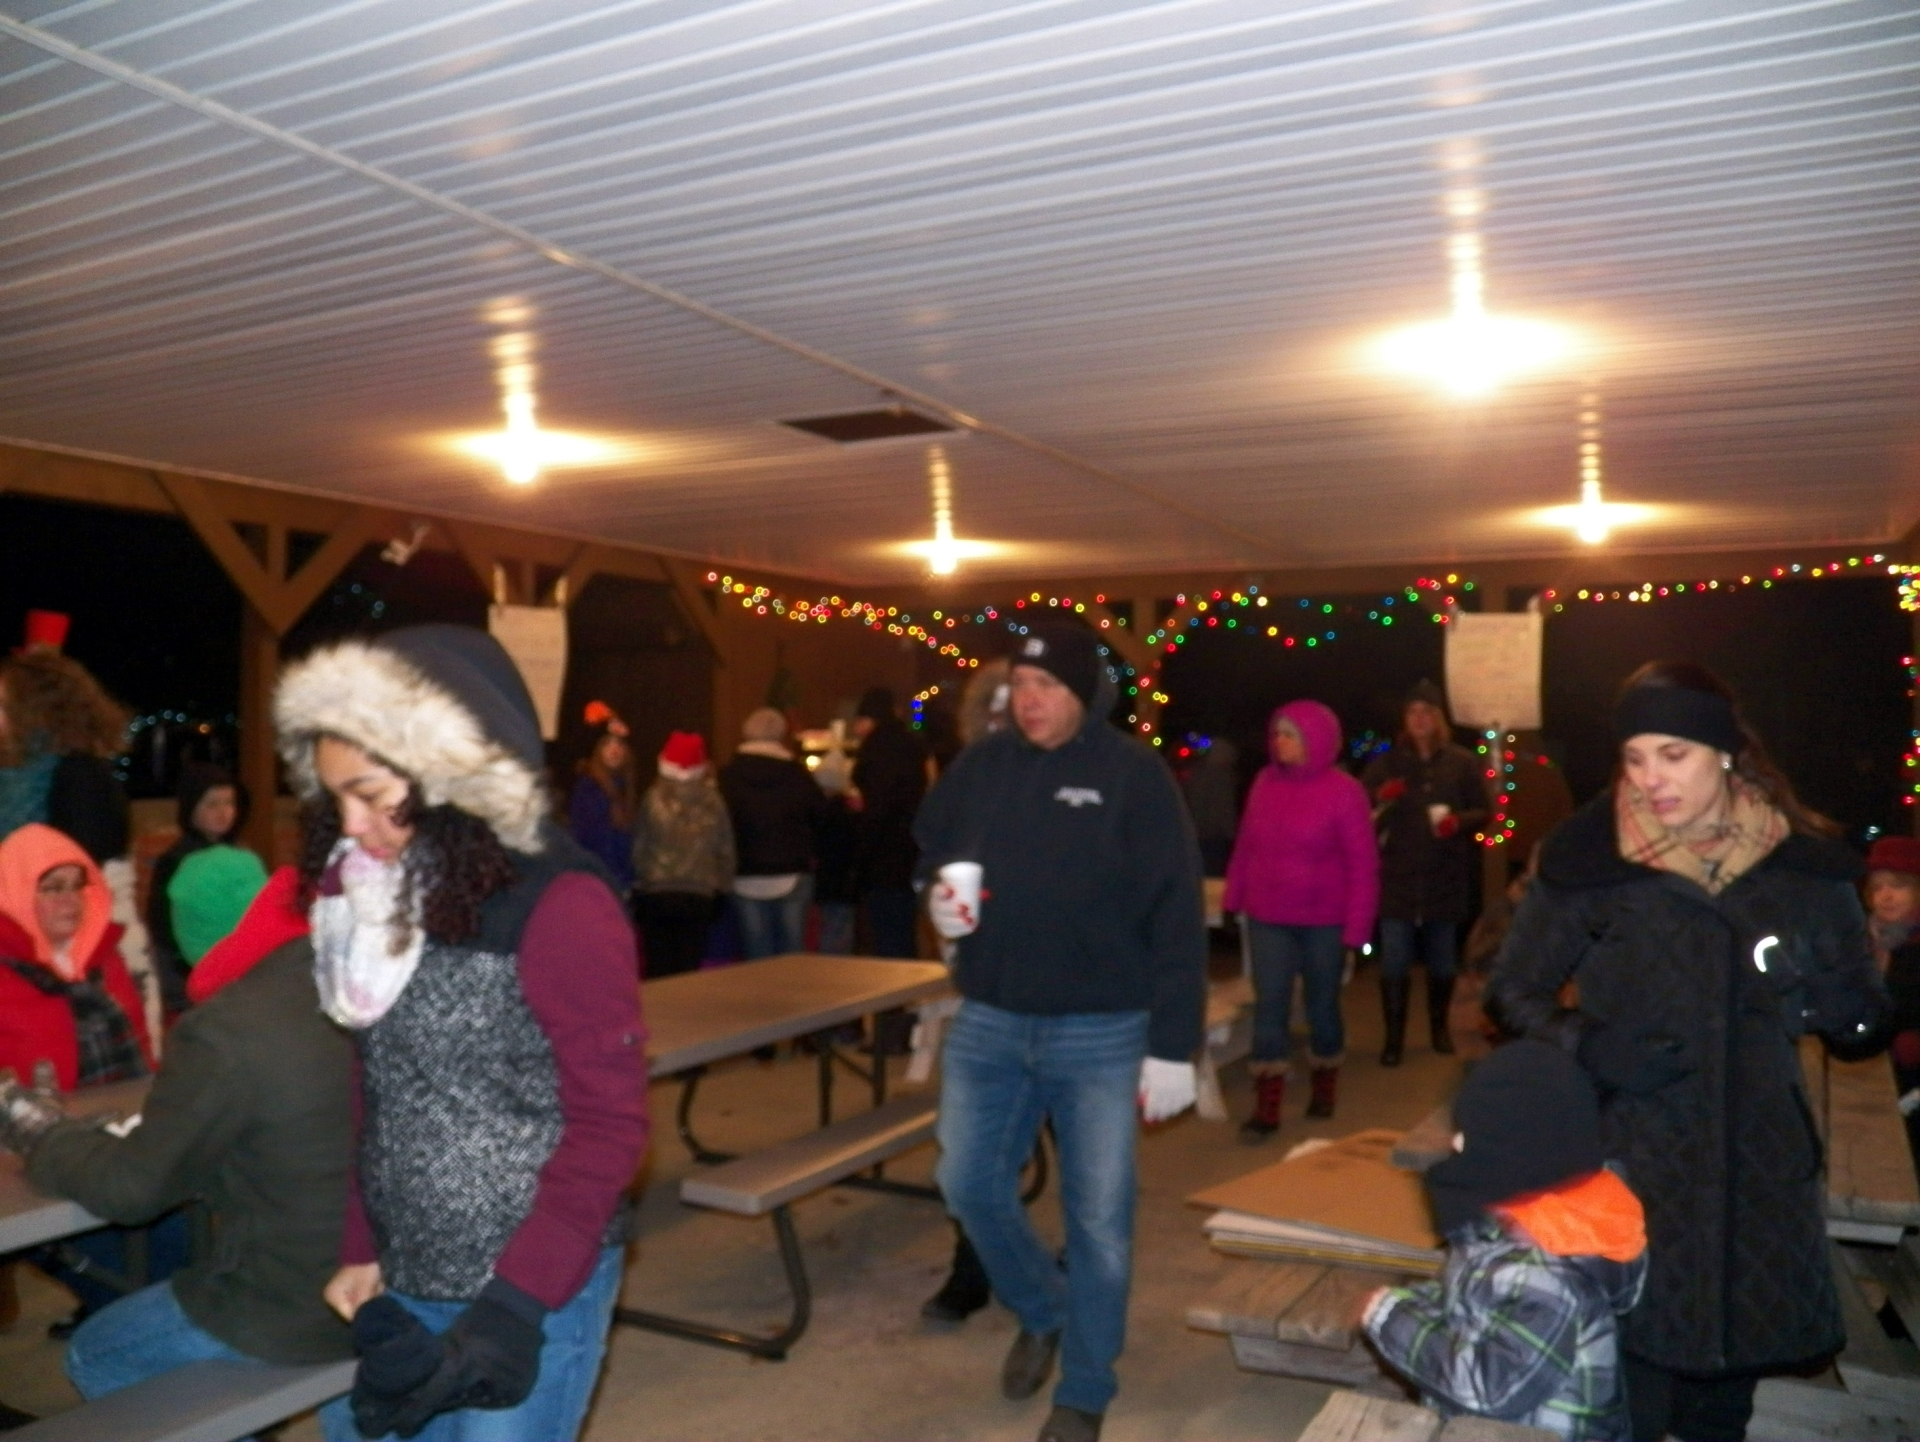 Cookies, hot chocolate and popcorn at the shelter house